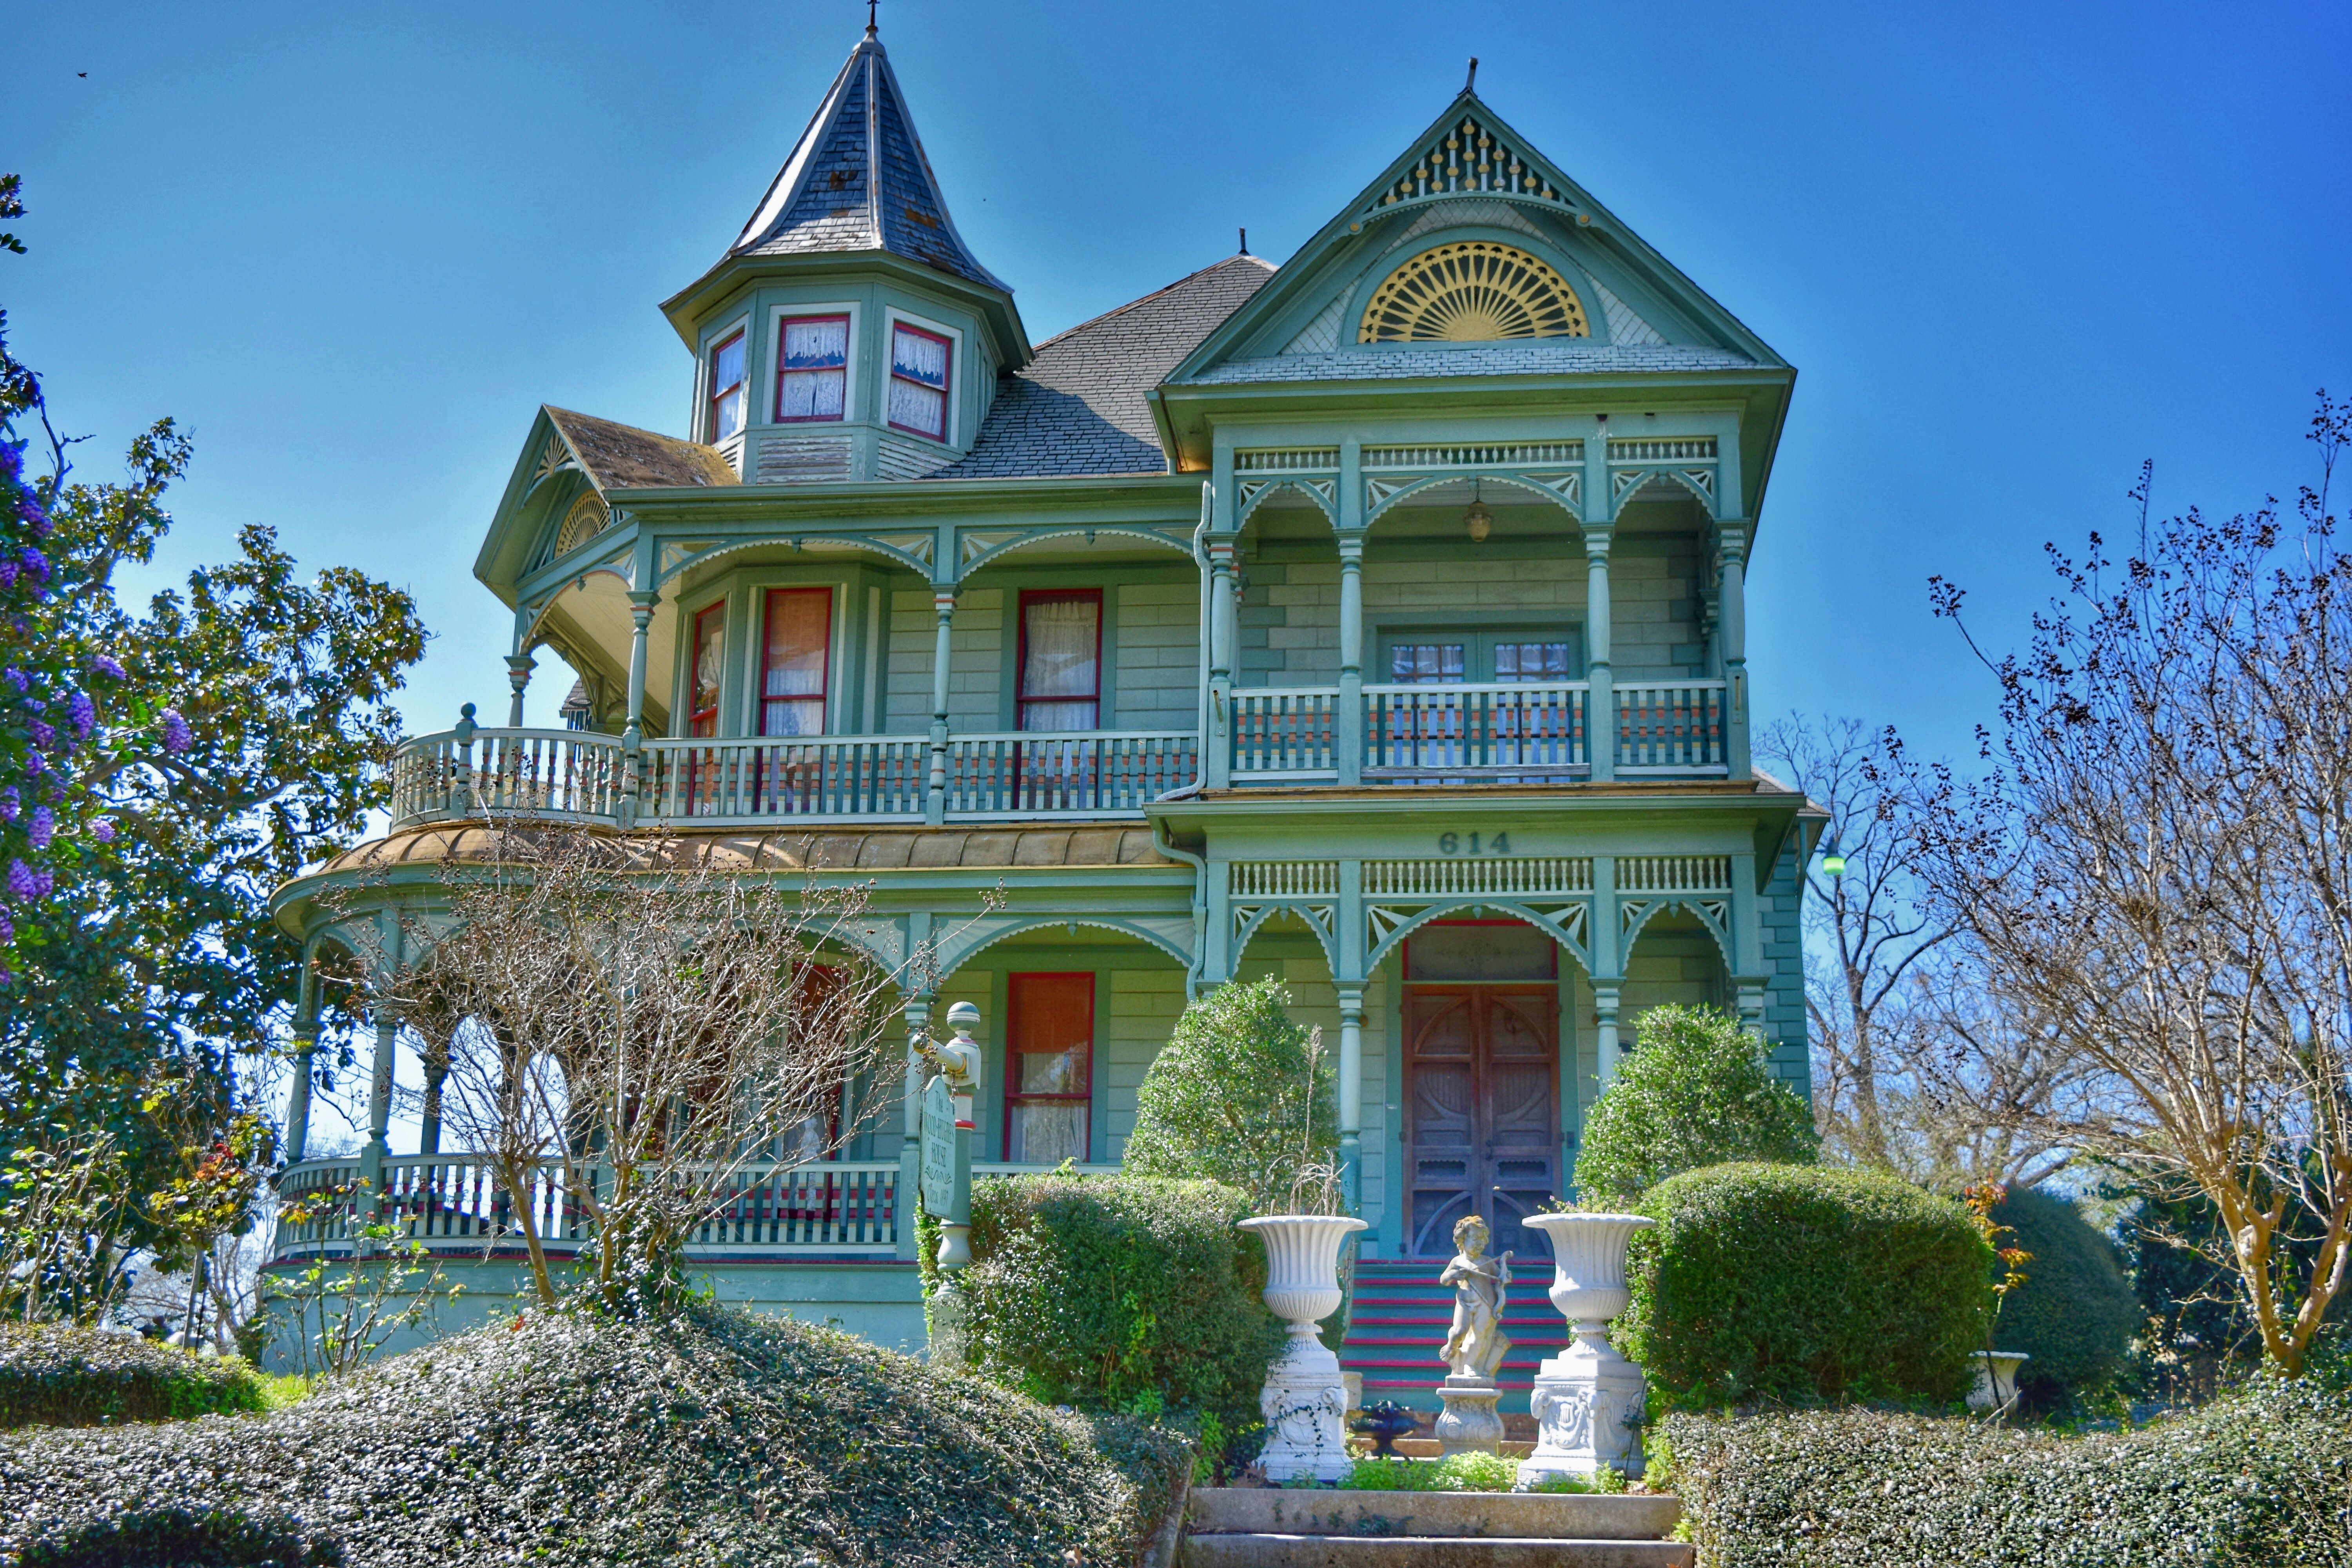 Beautiful 1897 Queen Anne Victorian In Historic Brenham Texas Some Serious House Goals Right Here Photog Fantasy House Victorian Homes Beautiful Buildings